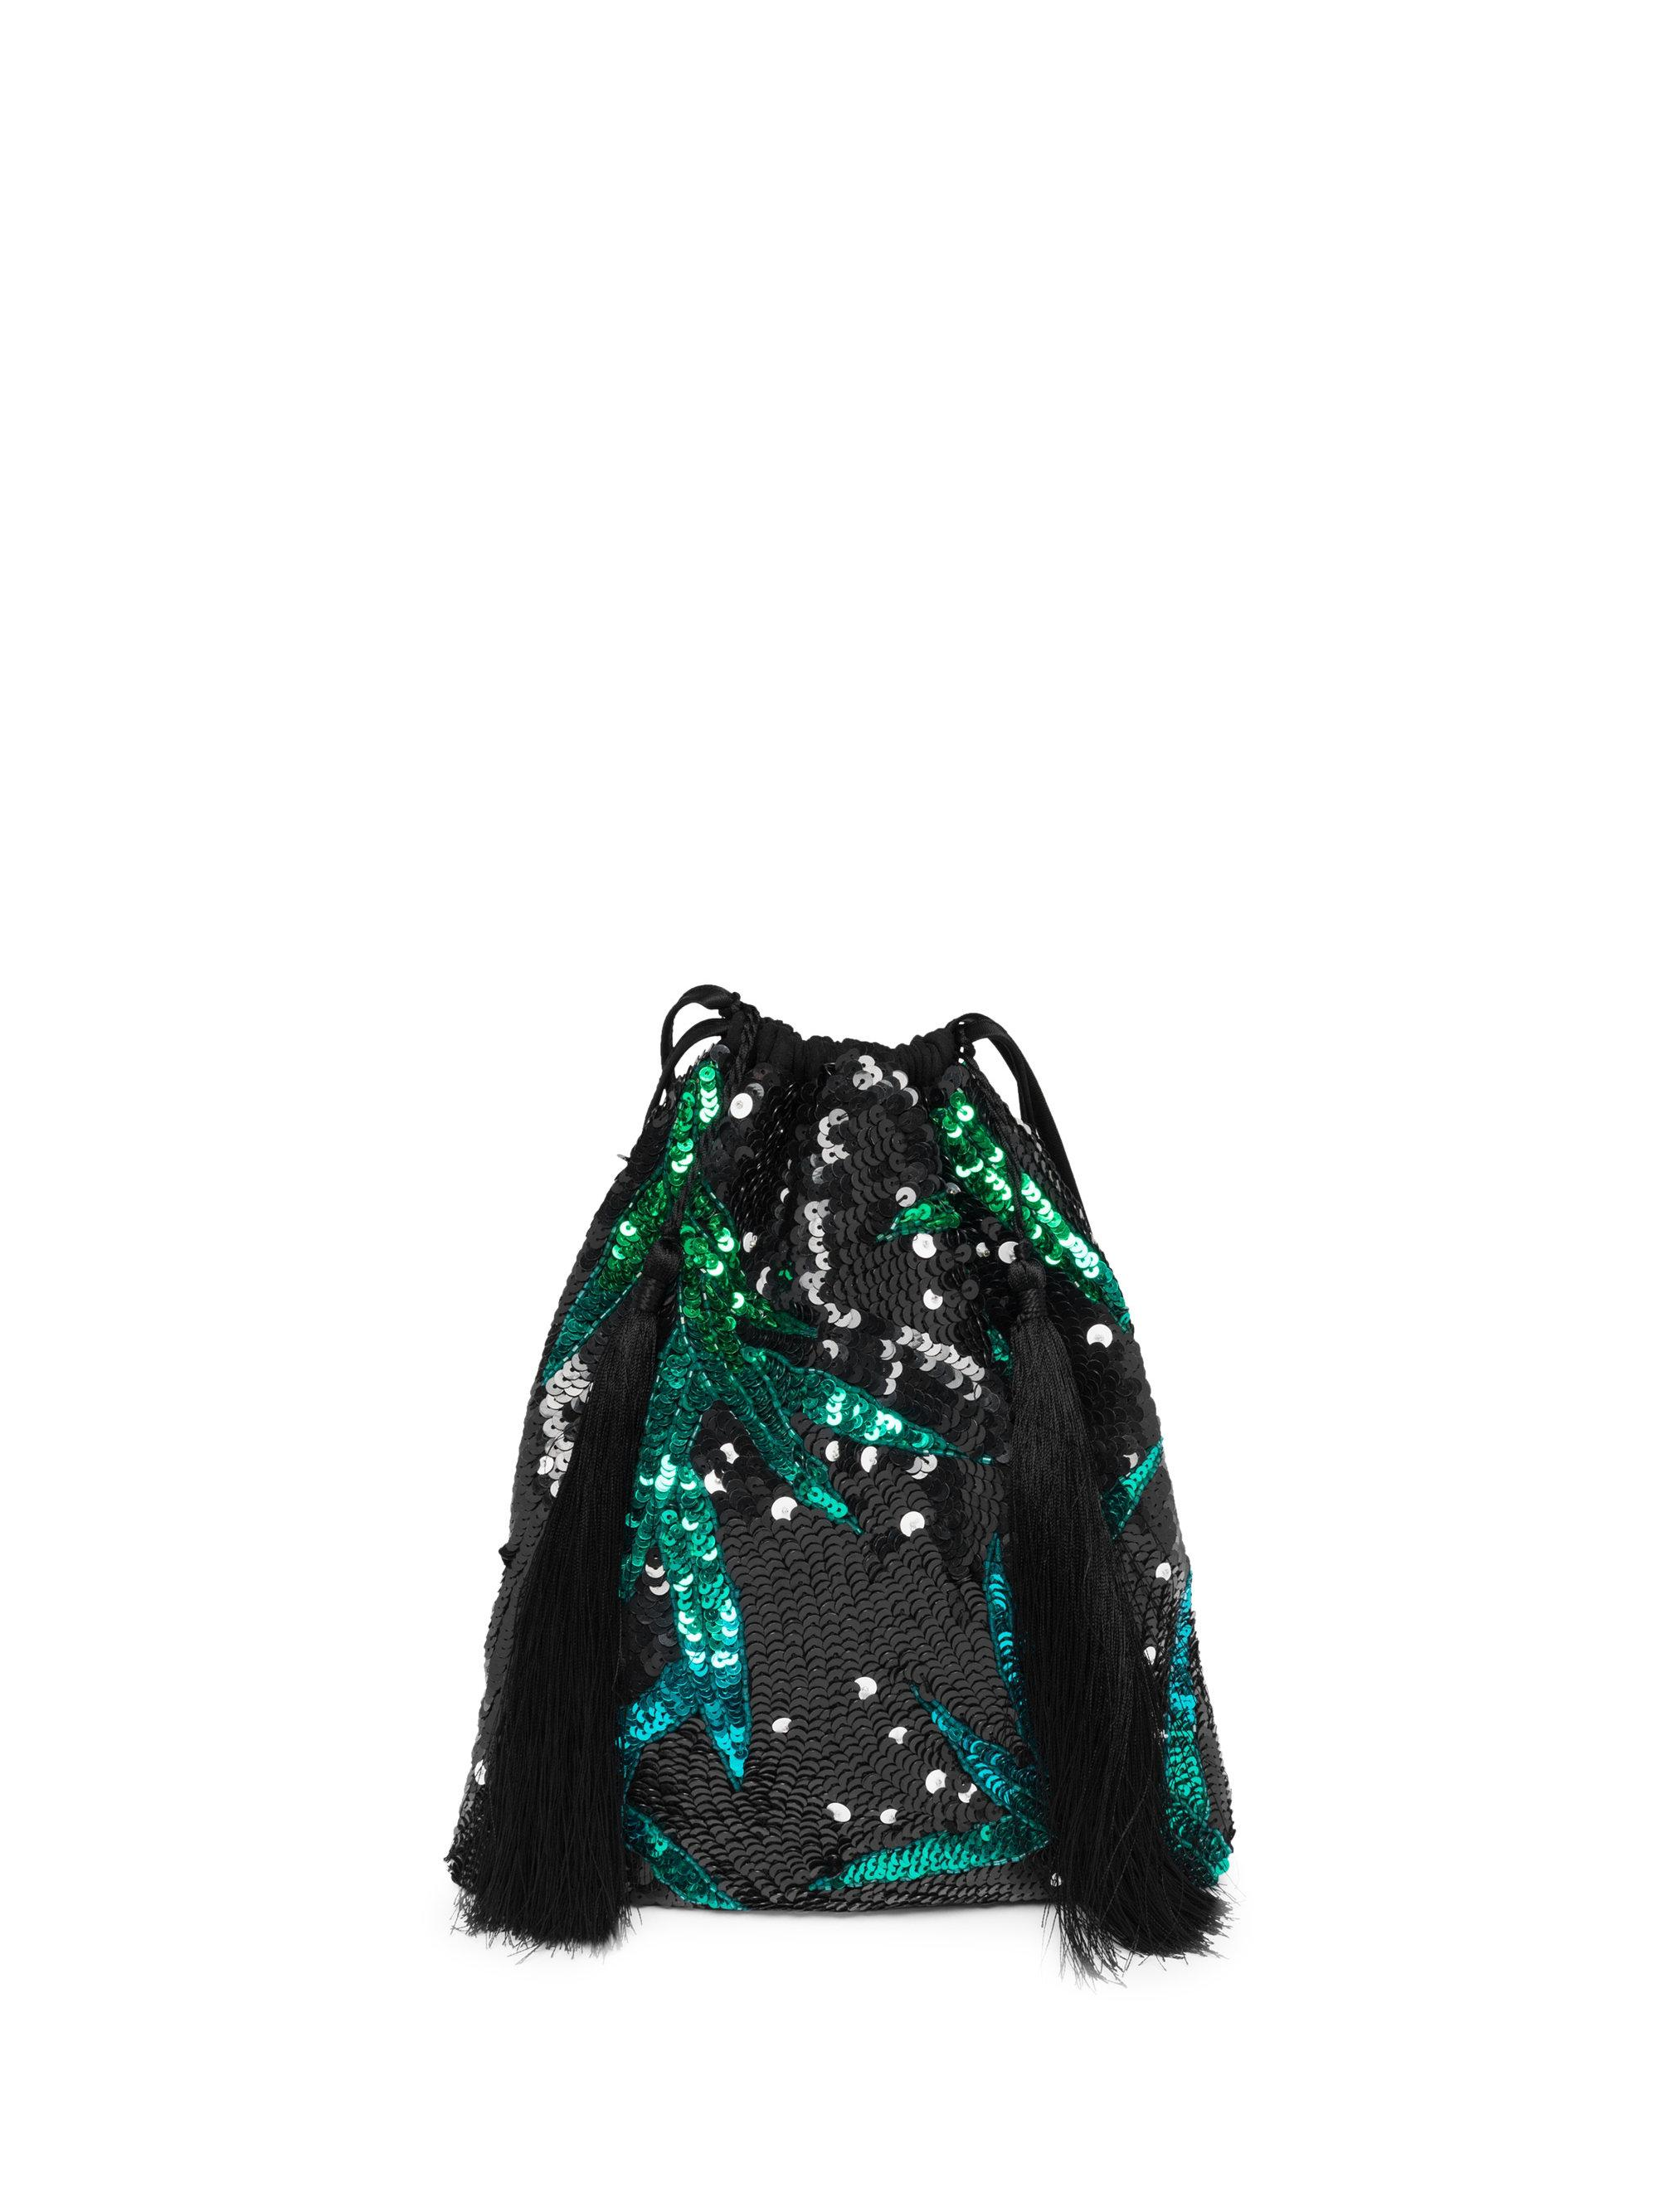 Attico Georgette bag Buy Cheap Buy Cheap The Cheapest Discount For Sale 1bysaG4G8e